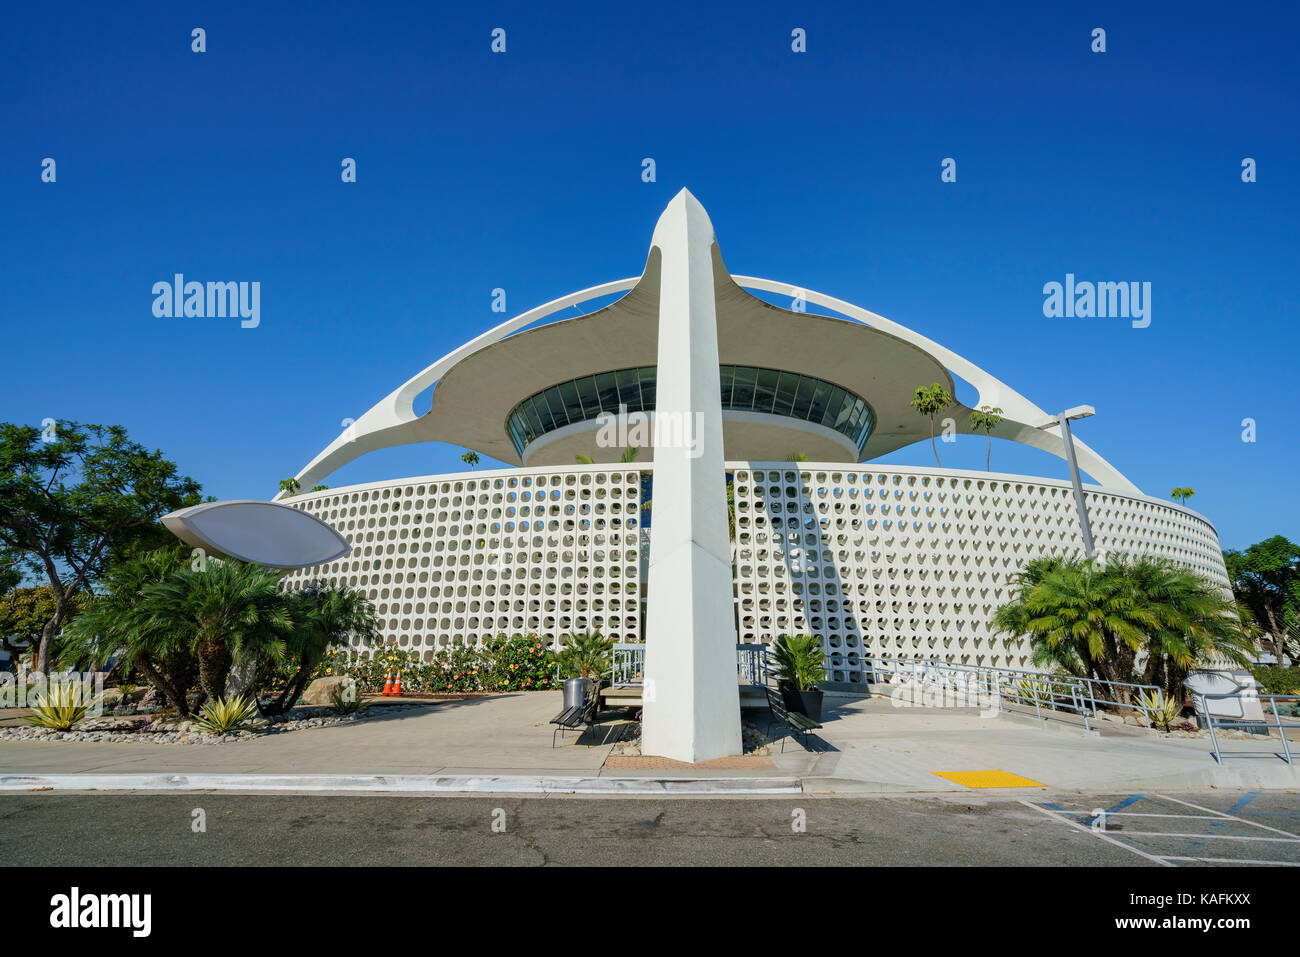 Exterior view of LAX Theme Building on morning at Los Angeles, California, United States - Stock Image